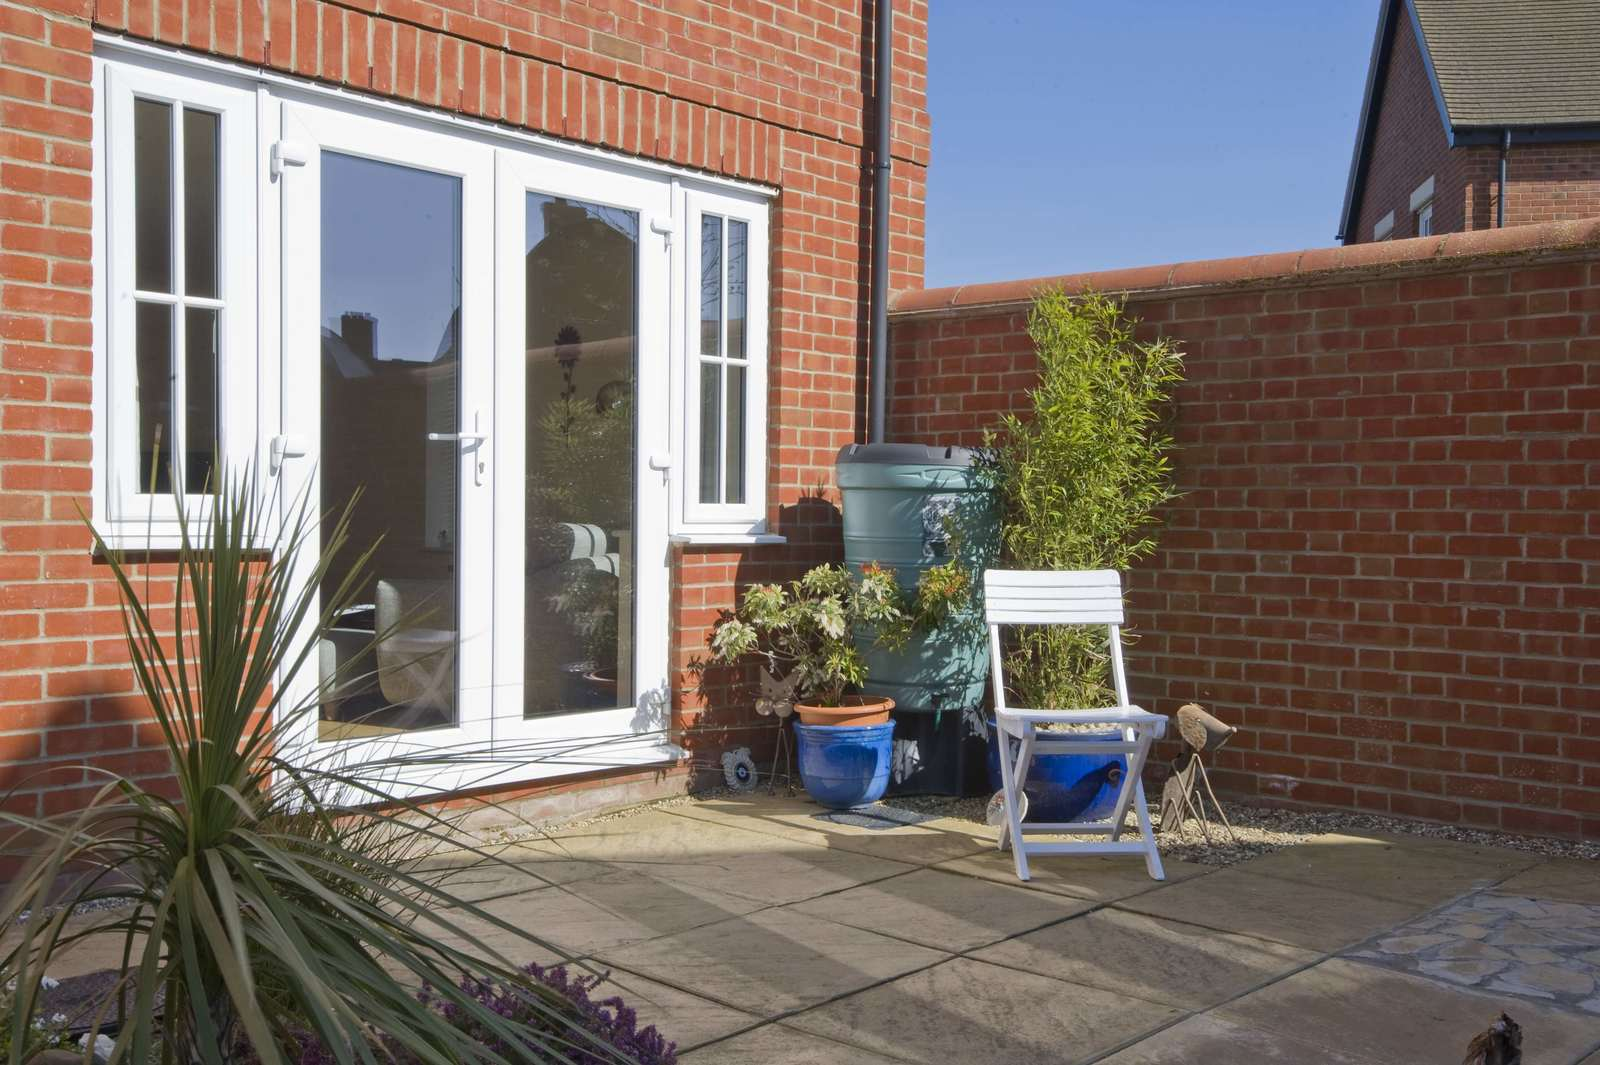 3 bed house for sale in Woodpecker Close, Great Barford 12